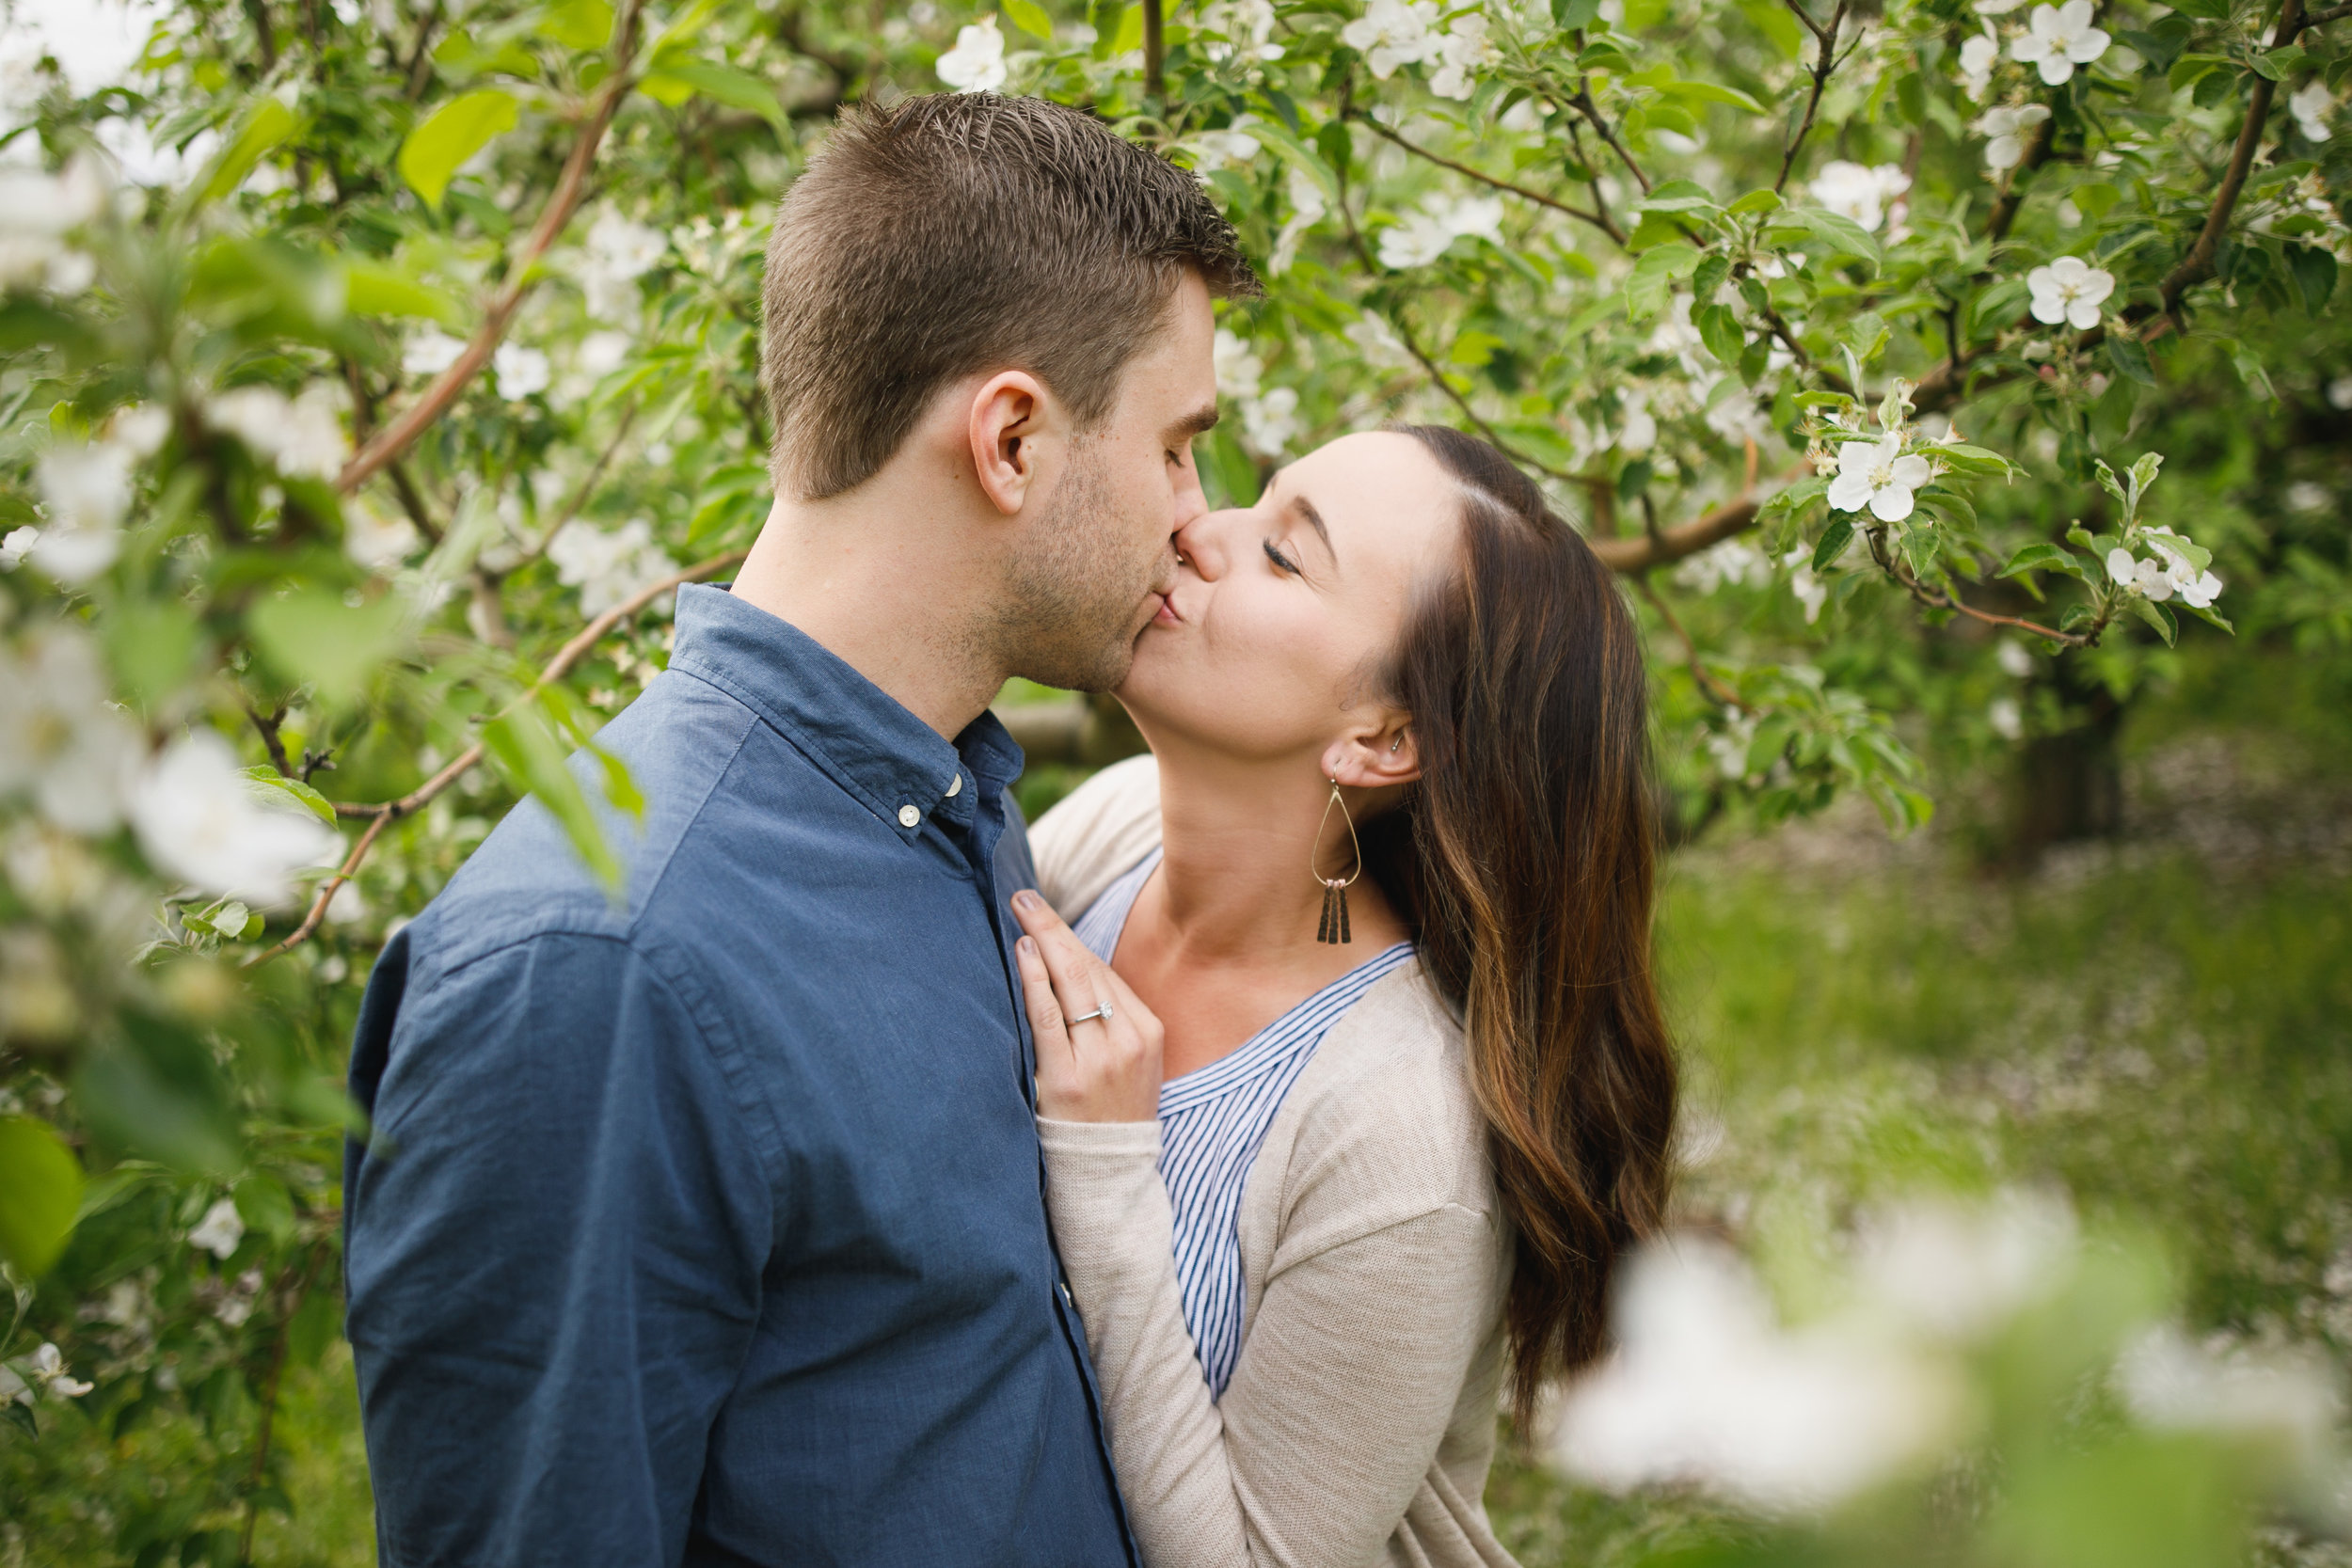 Grand Rapids Photographer - grand rapids wedding photographer - brian and katie engaged - apple blossoms - engagement session - jessica darling - sparta michigan - michigan wedding photographer- J Darling Photo008.jpg